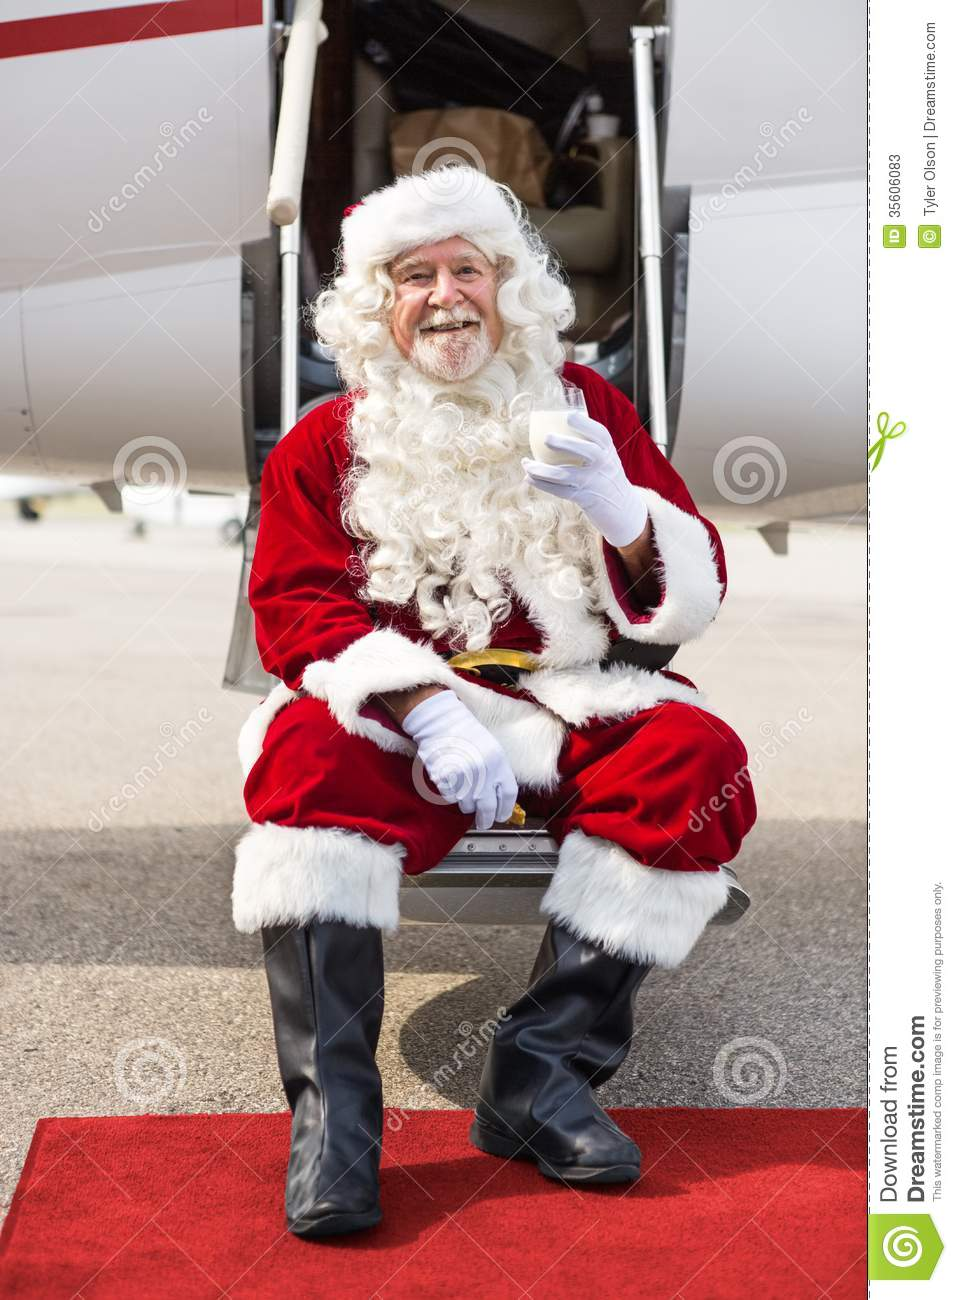 Santa Holding Milk Glass While que senta-se em privado